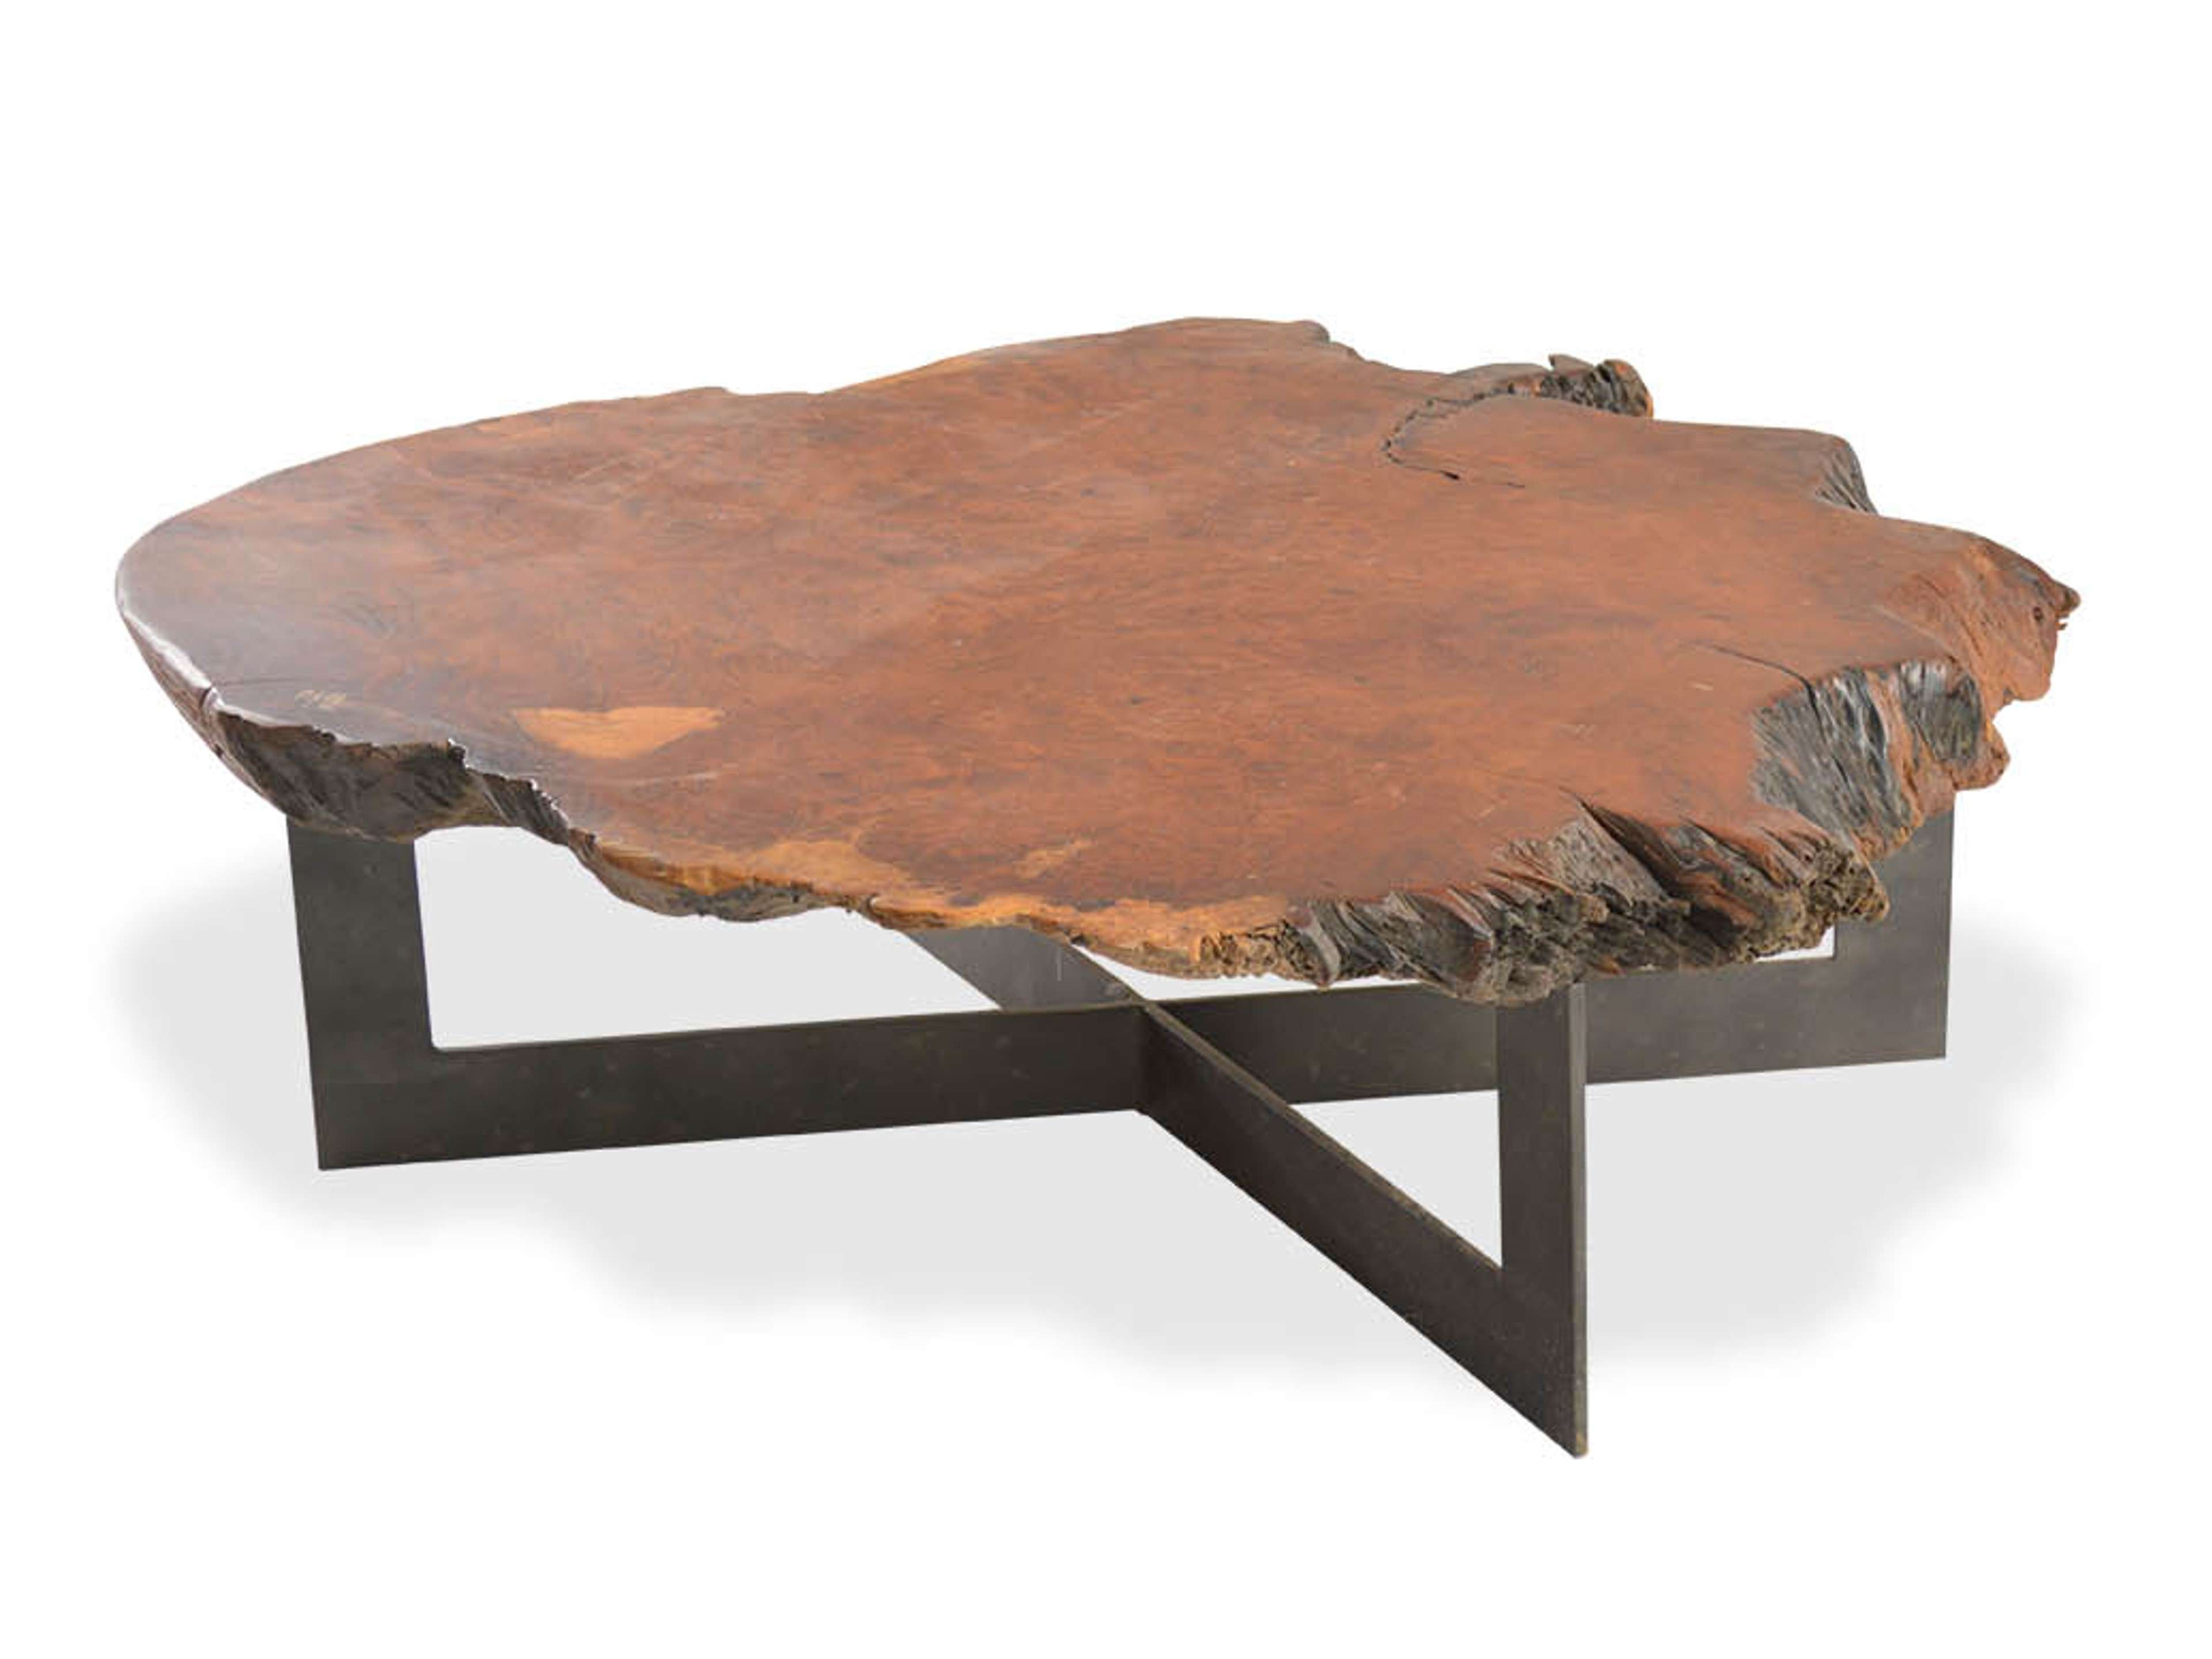 Natural Wood Coffee Tables Pertaining To Latest Natural Wood Coffee Tables (Gallery 14 of 20)